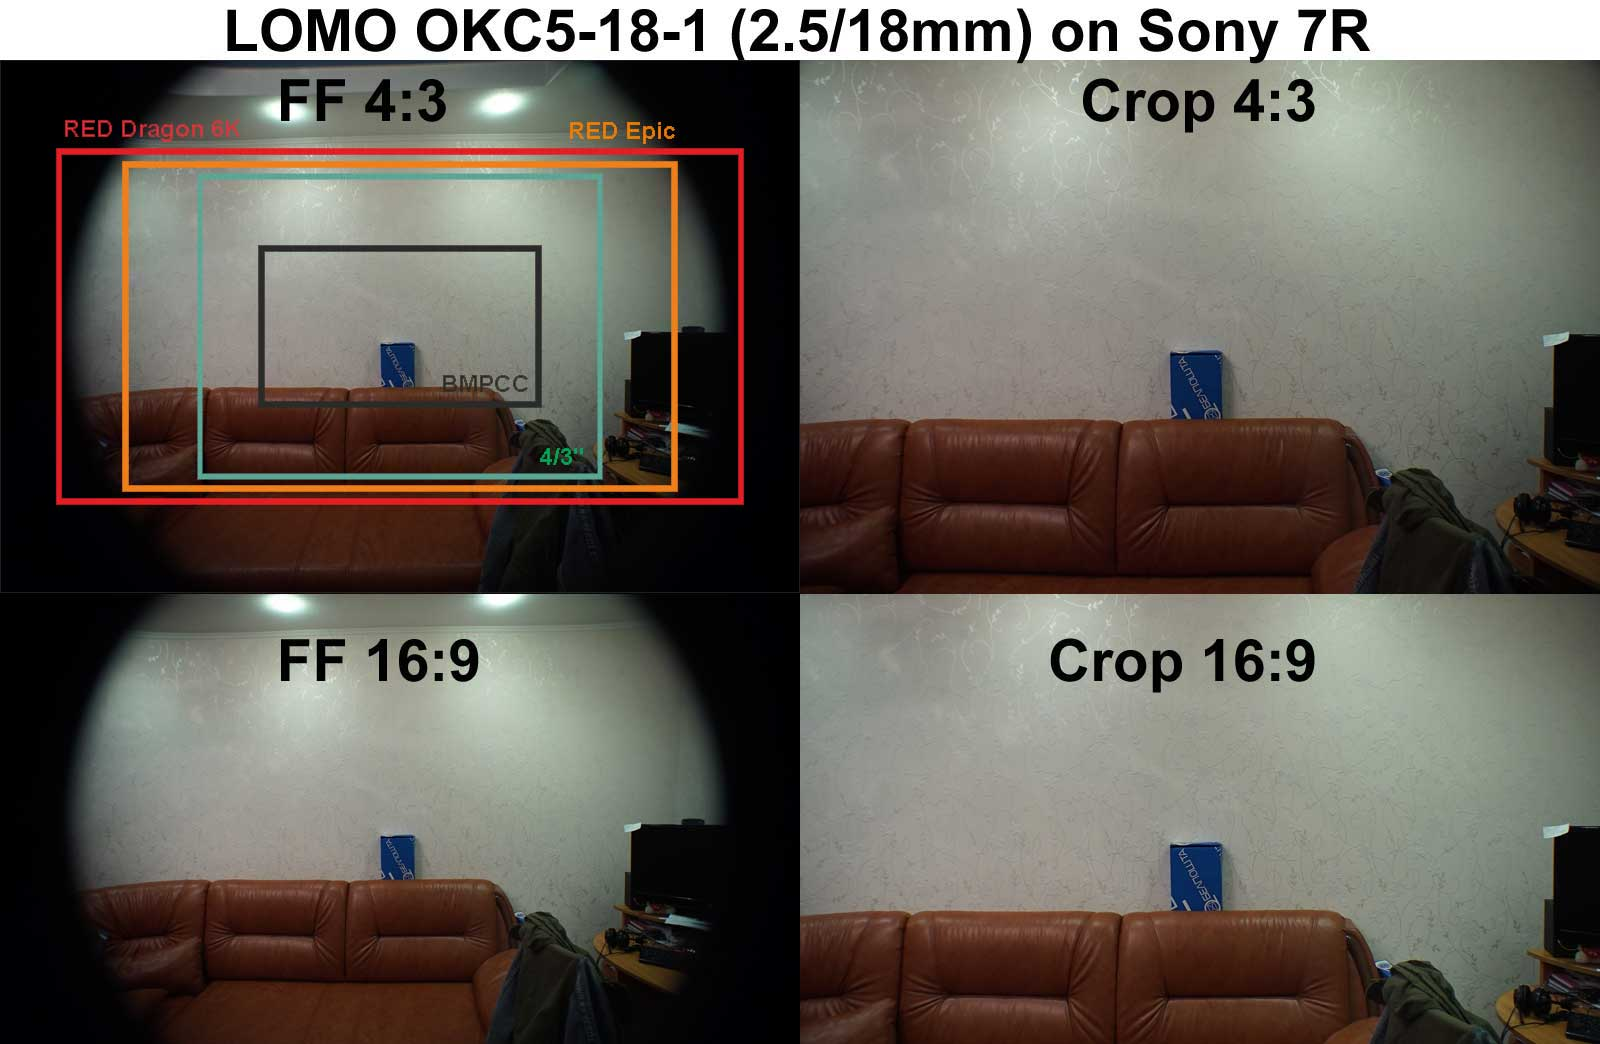 Coverage of LOMO OKC5-18-1 lens on Sony 7R camera